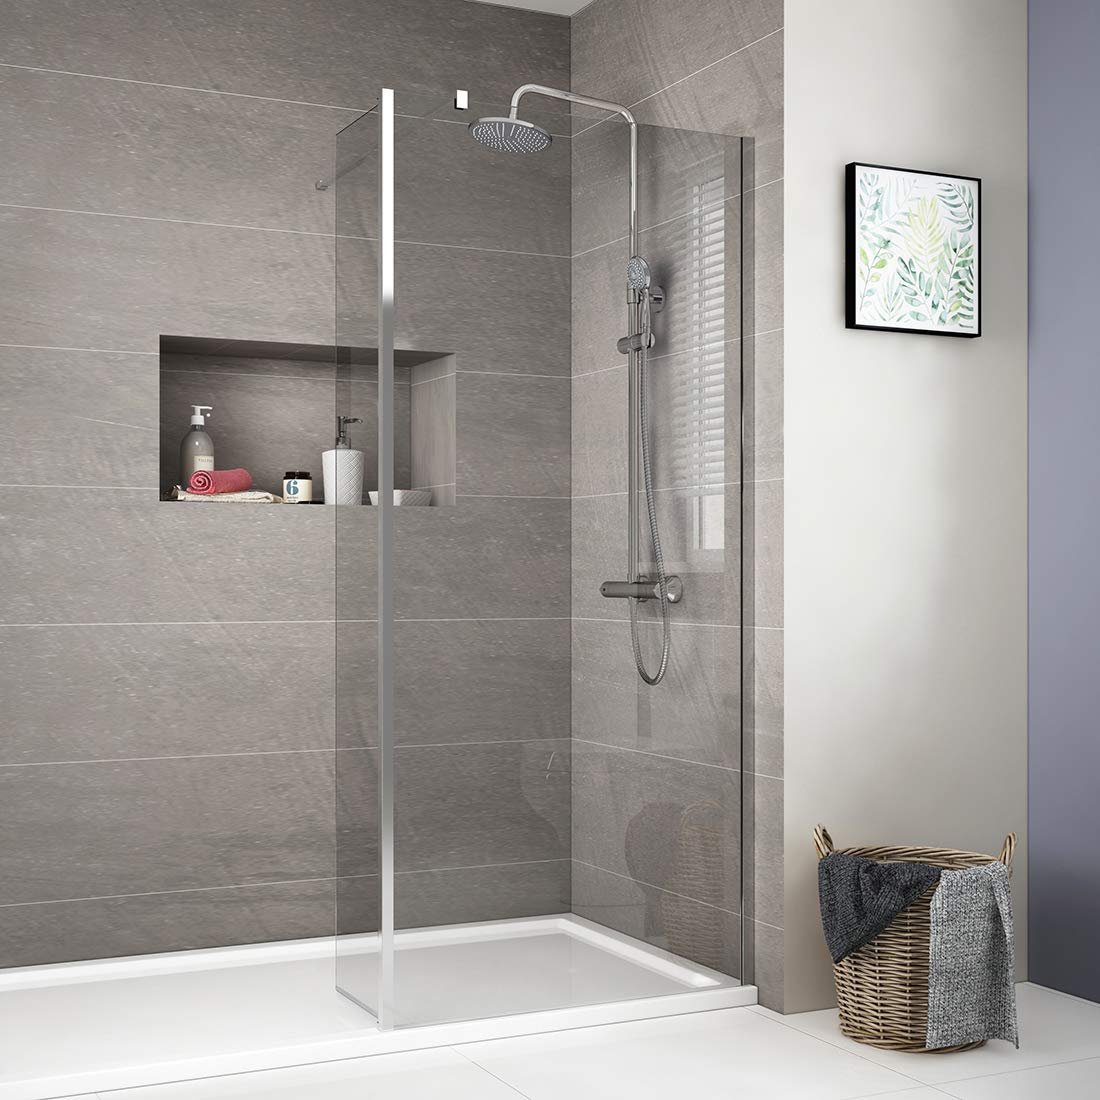 Clear 1000mm Screen + 300mm Flipper 1000mm Walk in Wet Room Shower Enclosure Screen Panel with 300mm Flipper Panel   8mm Easy Tea Glass Walkin Shower Enclosure with 300mm Return Panel and Support Bar-Brown